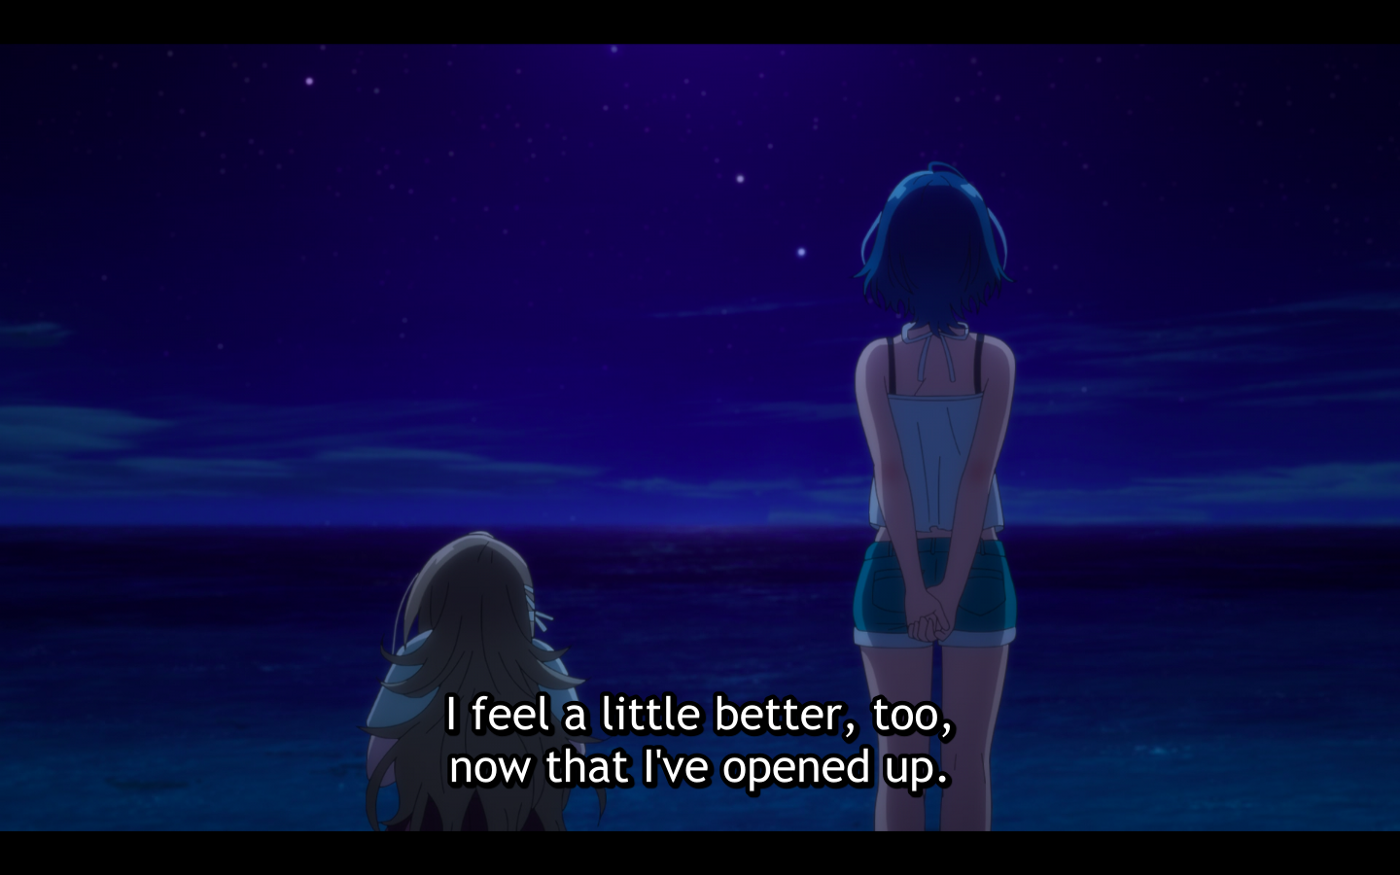 Kukuru and Fuuka talking to each other about their problems on the beach at night.